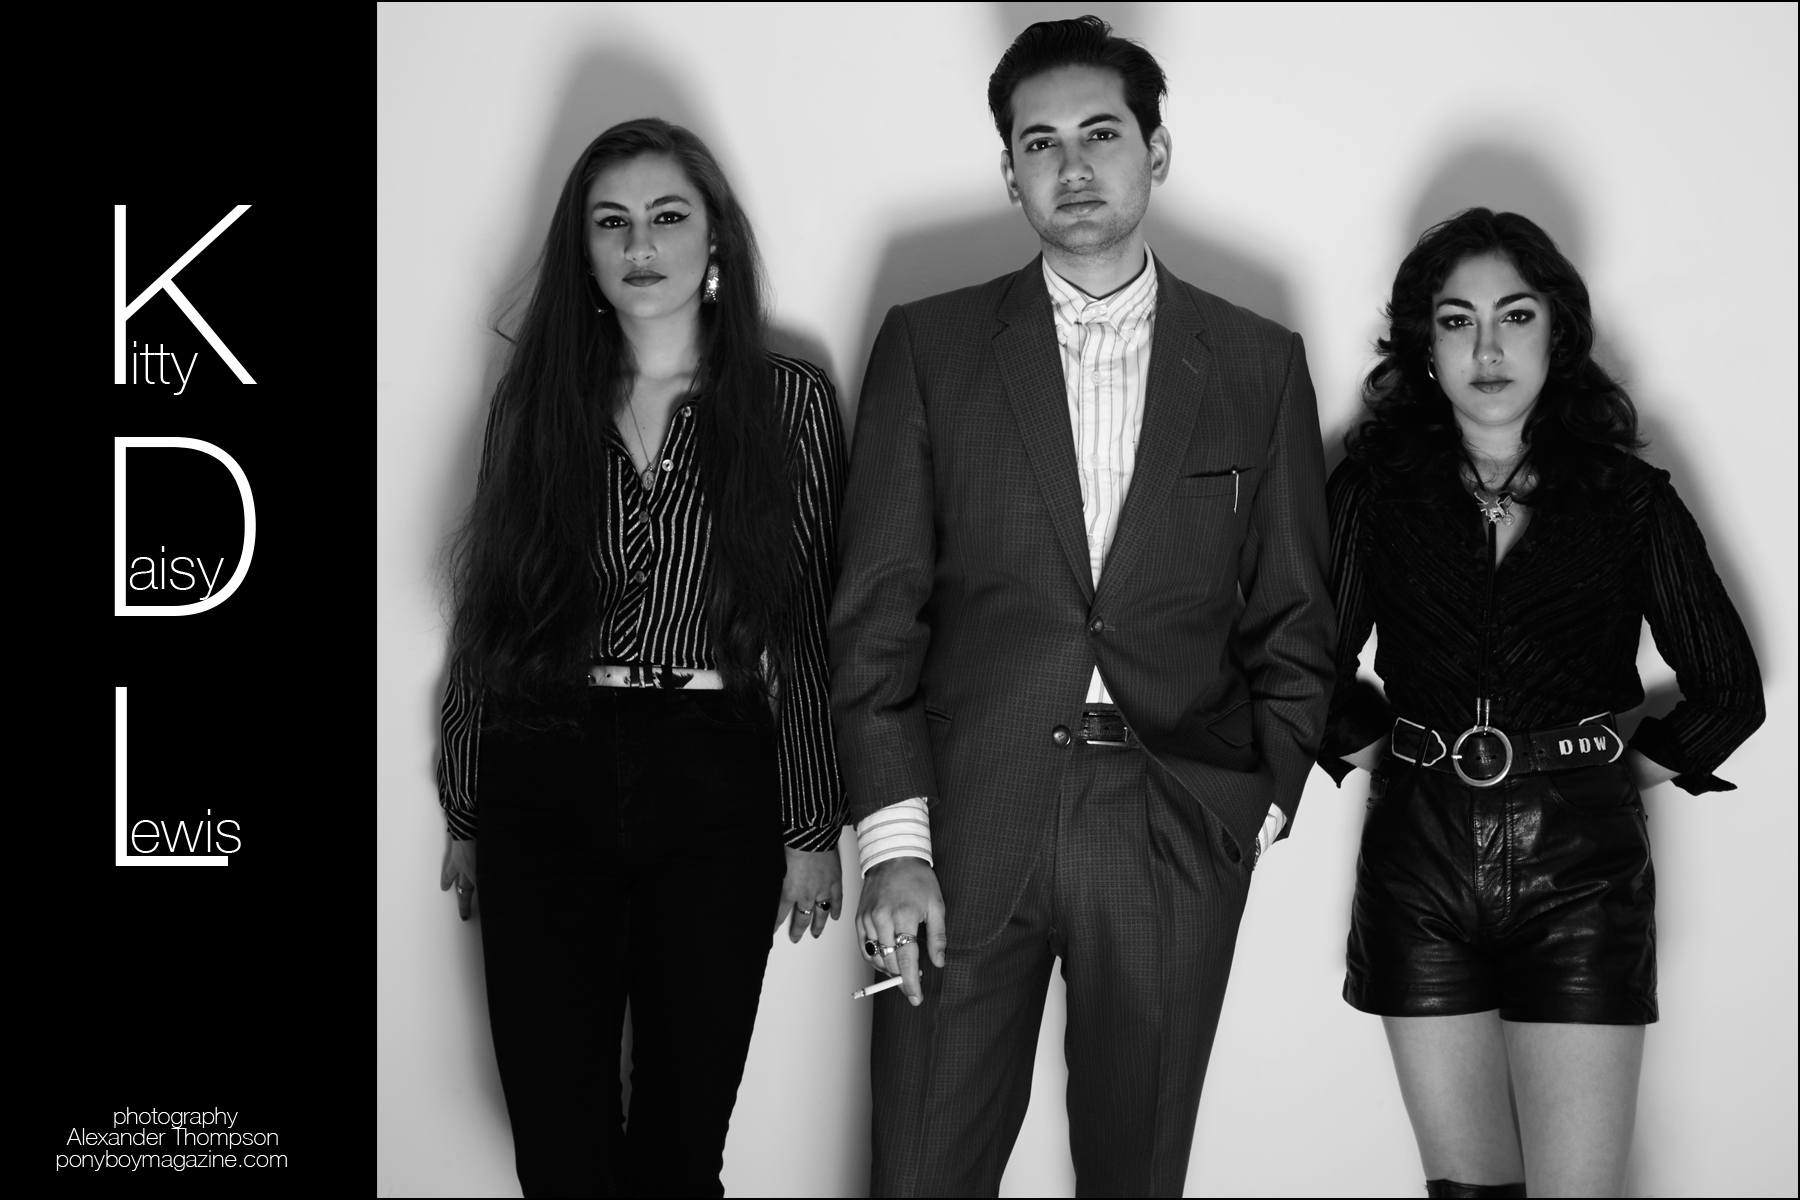 Kitty, Daisy & Lewis exclusively photographed for Ponyboy magazine by Alexander Thompson in New York.